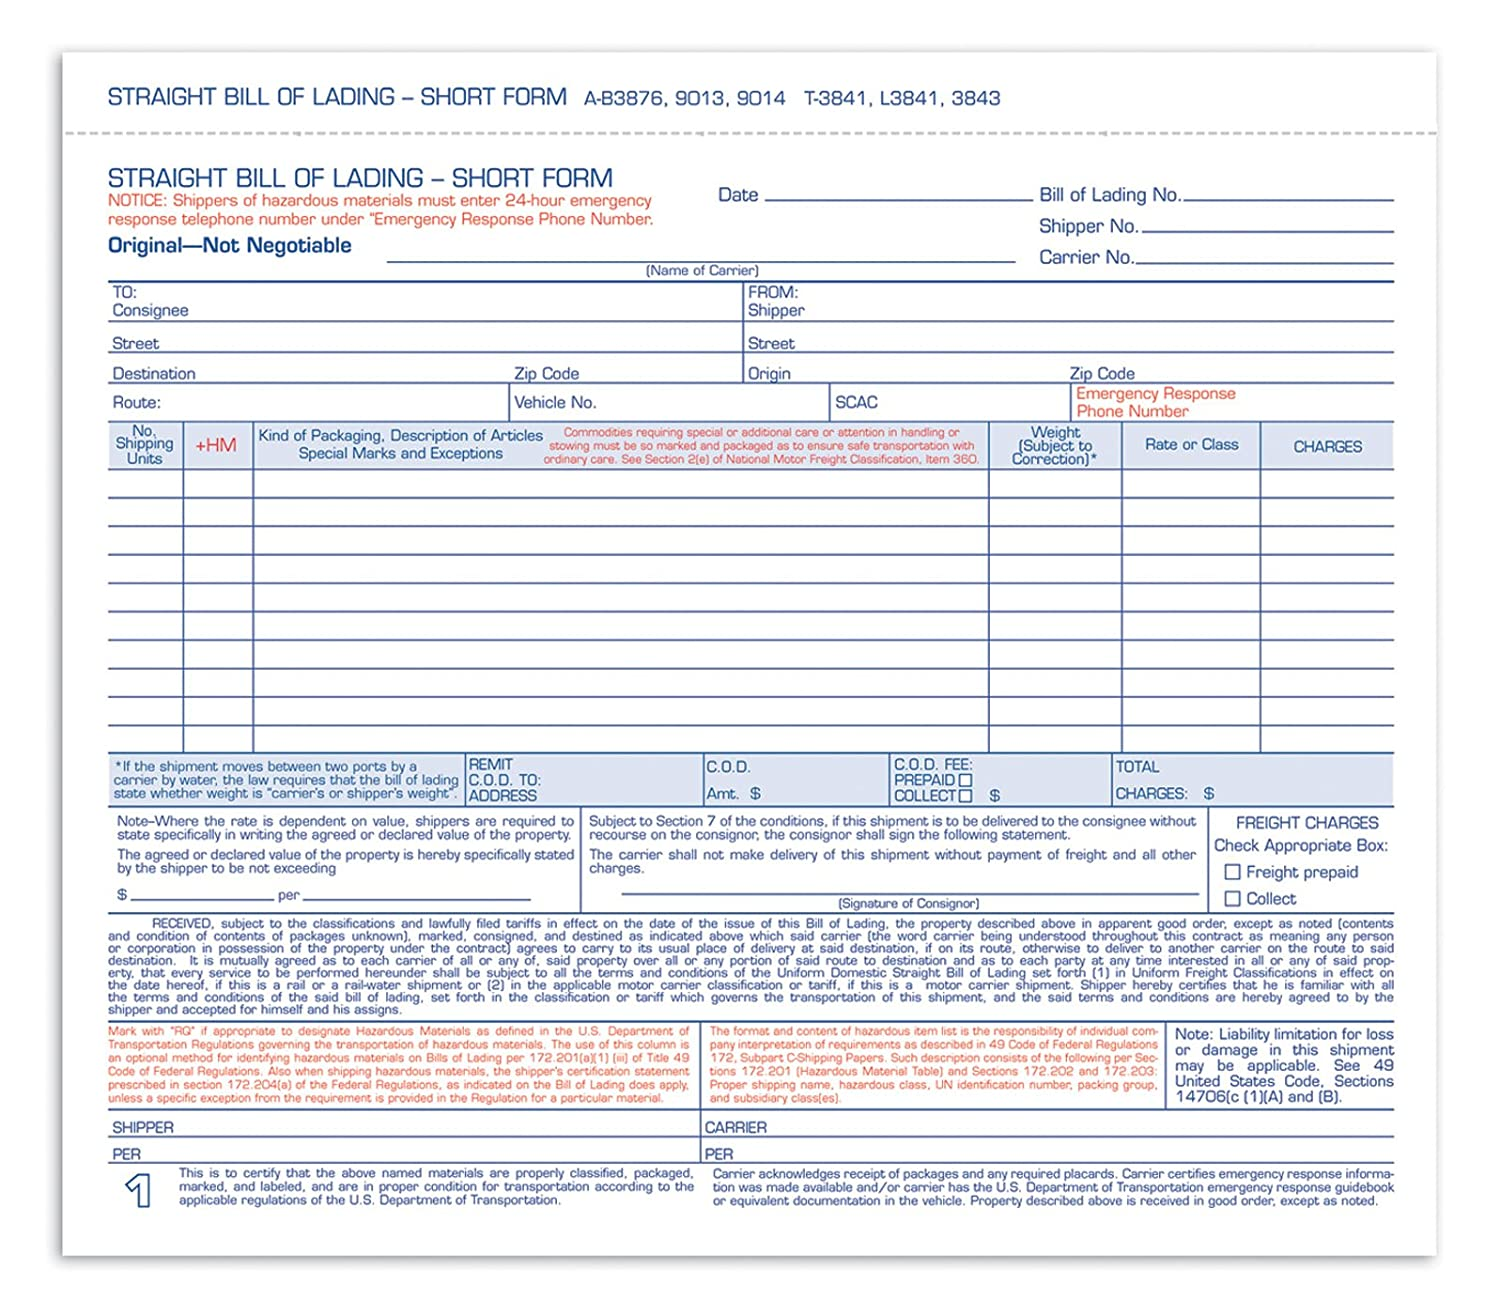 Amazon.com : Adams Bill Of Lading Short Form, 8.5 X 7.5 Inches, 3 Part, 50  Forms, White (9013) : Blank Shipping Forms : Office Products